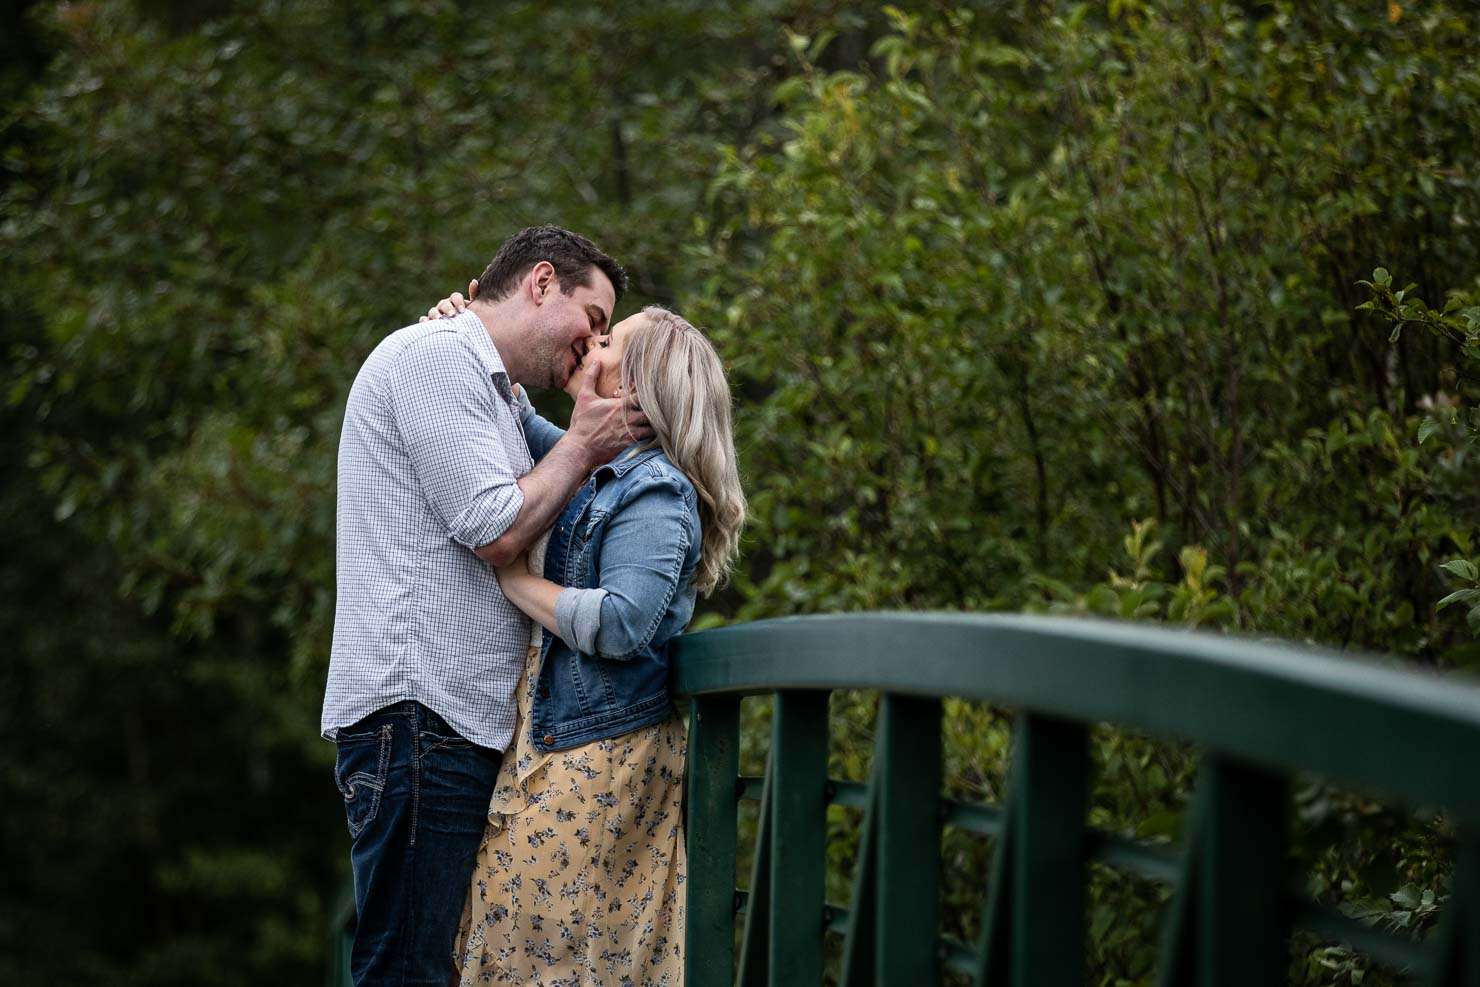 engagement photos, engagement, akaiserphoto, wedding photographer, sudbury ontario